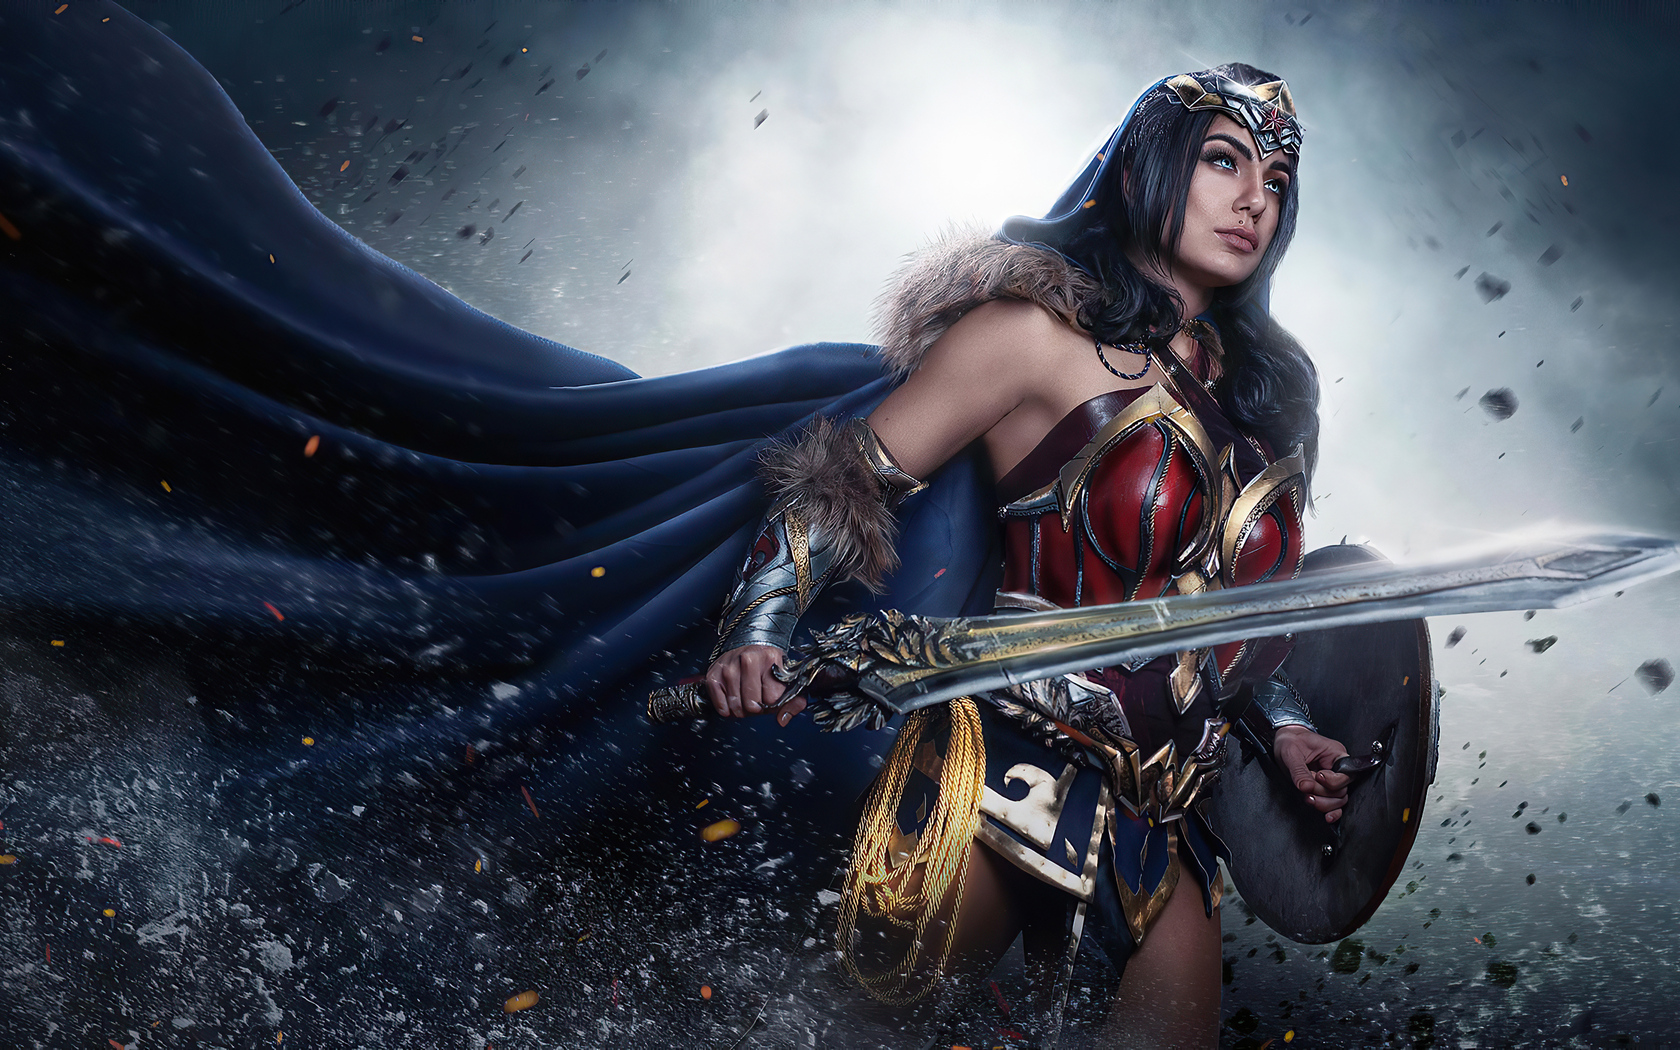 wonder-woman-cosplay-2020-4k-vd.jpg